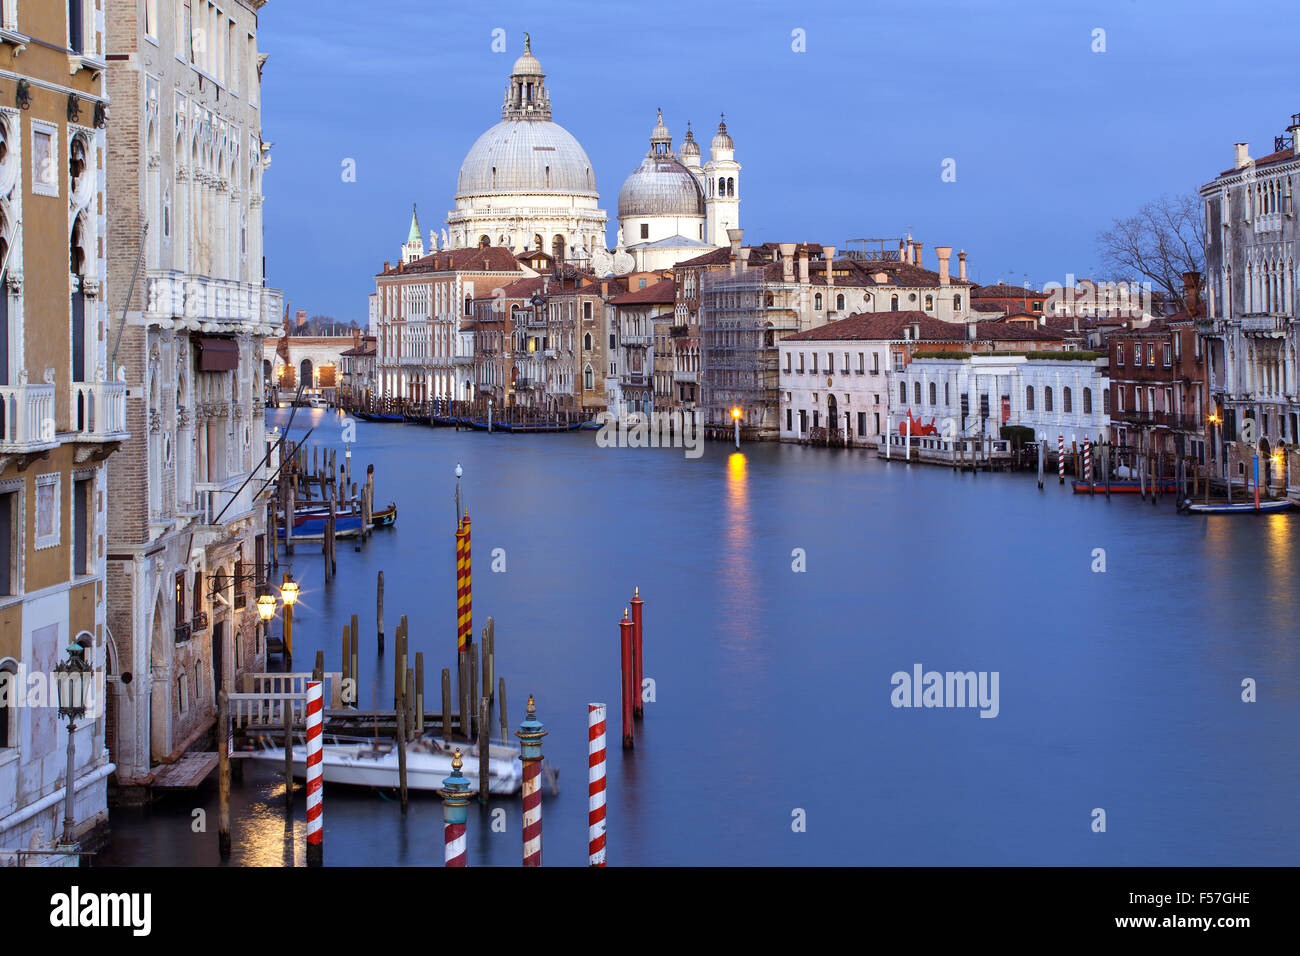 Venice Grand Canal evening view from Accademia Bridge, Italy Stock Photo